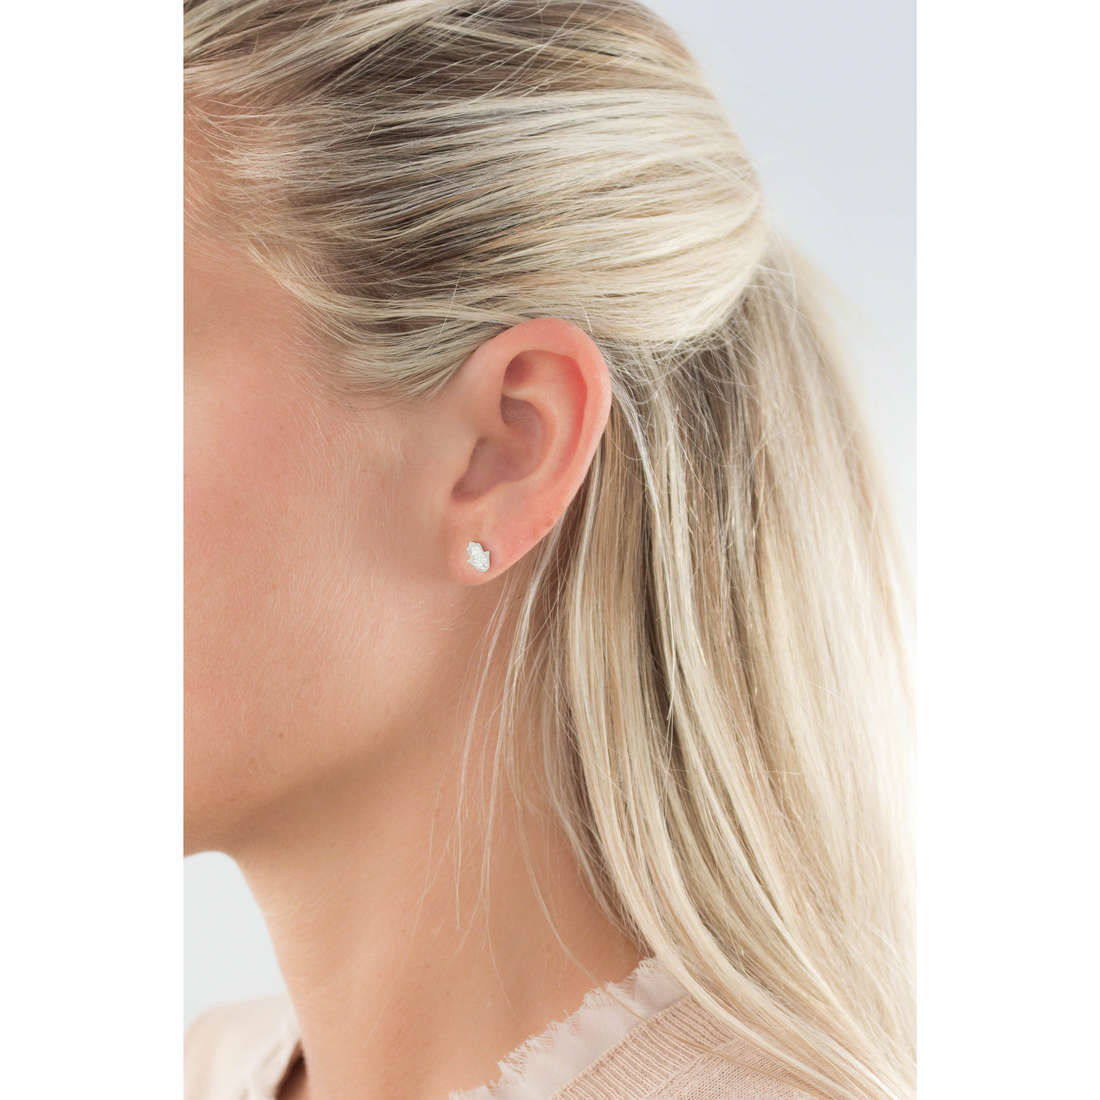 Marlù boucles d'oreille Time To femme 18OR029 indosso